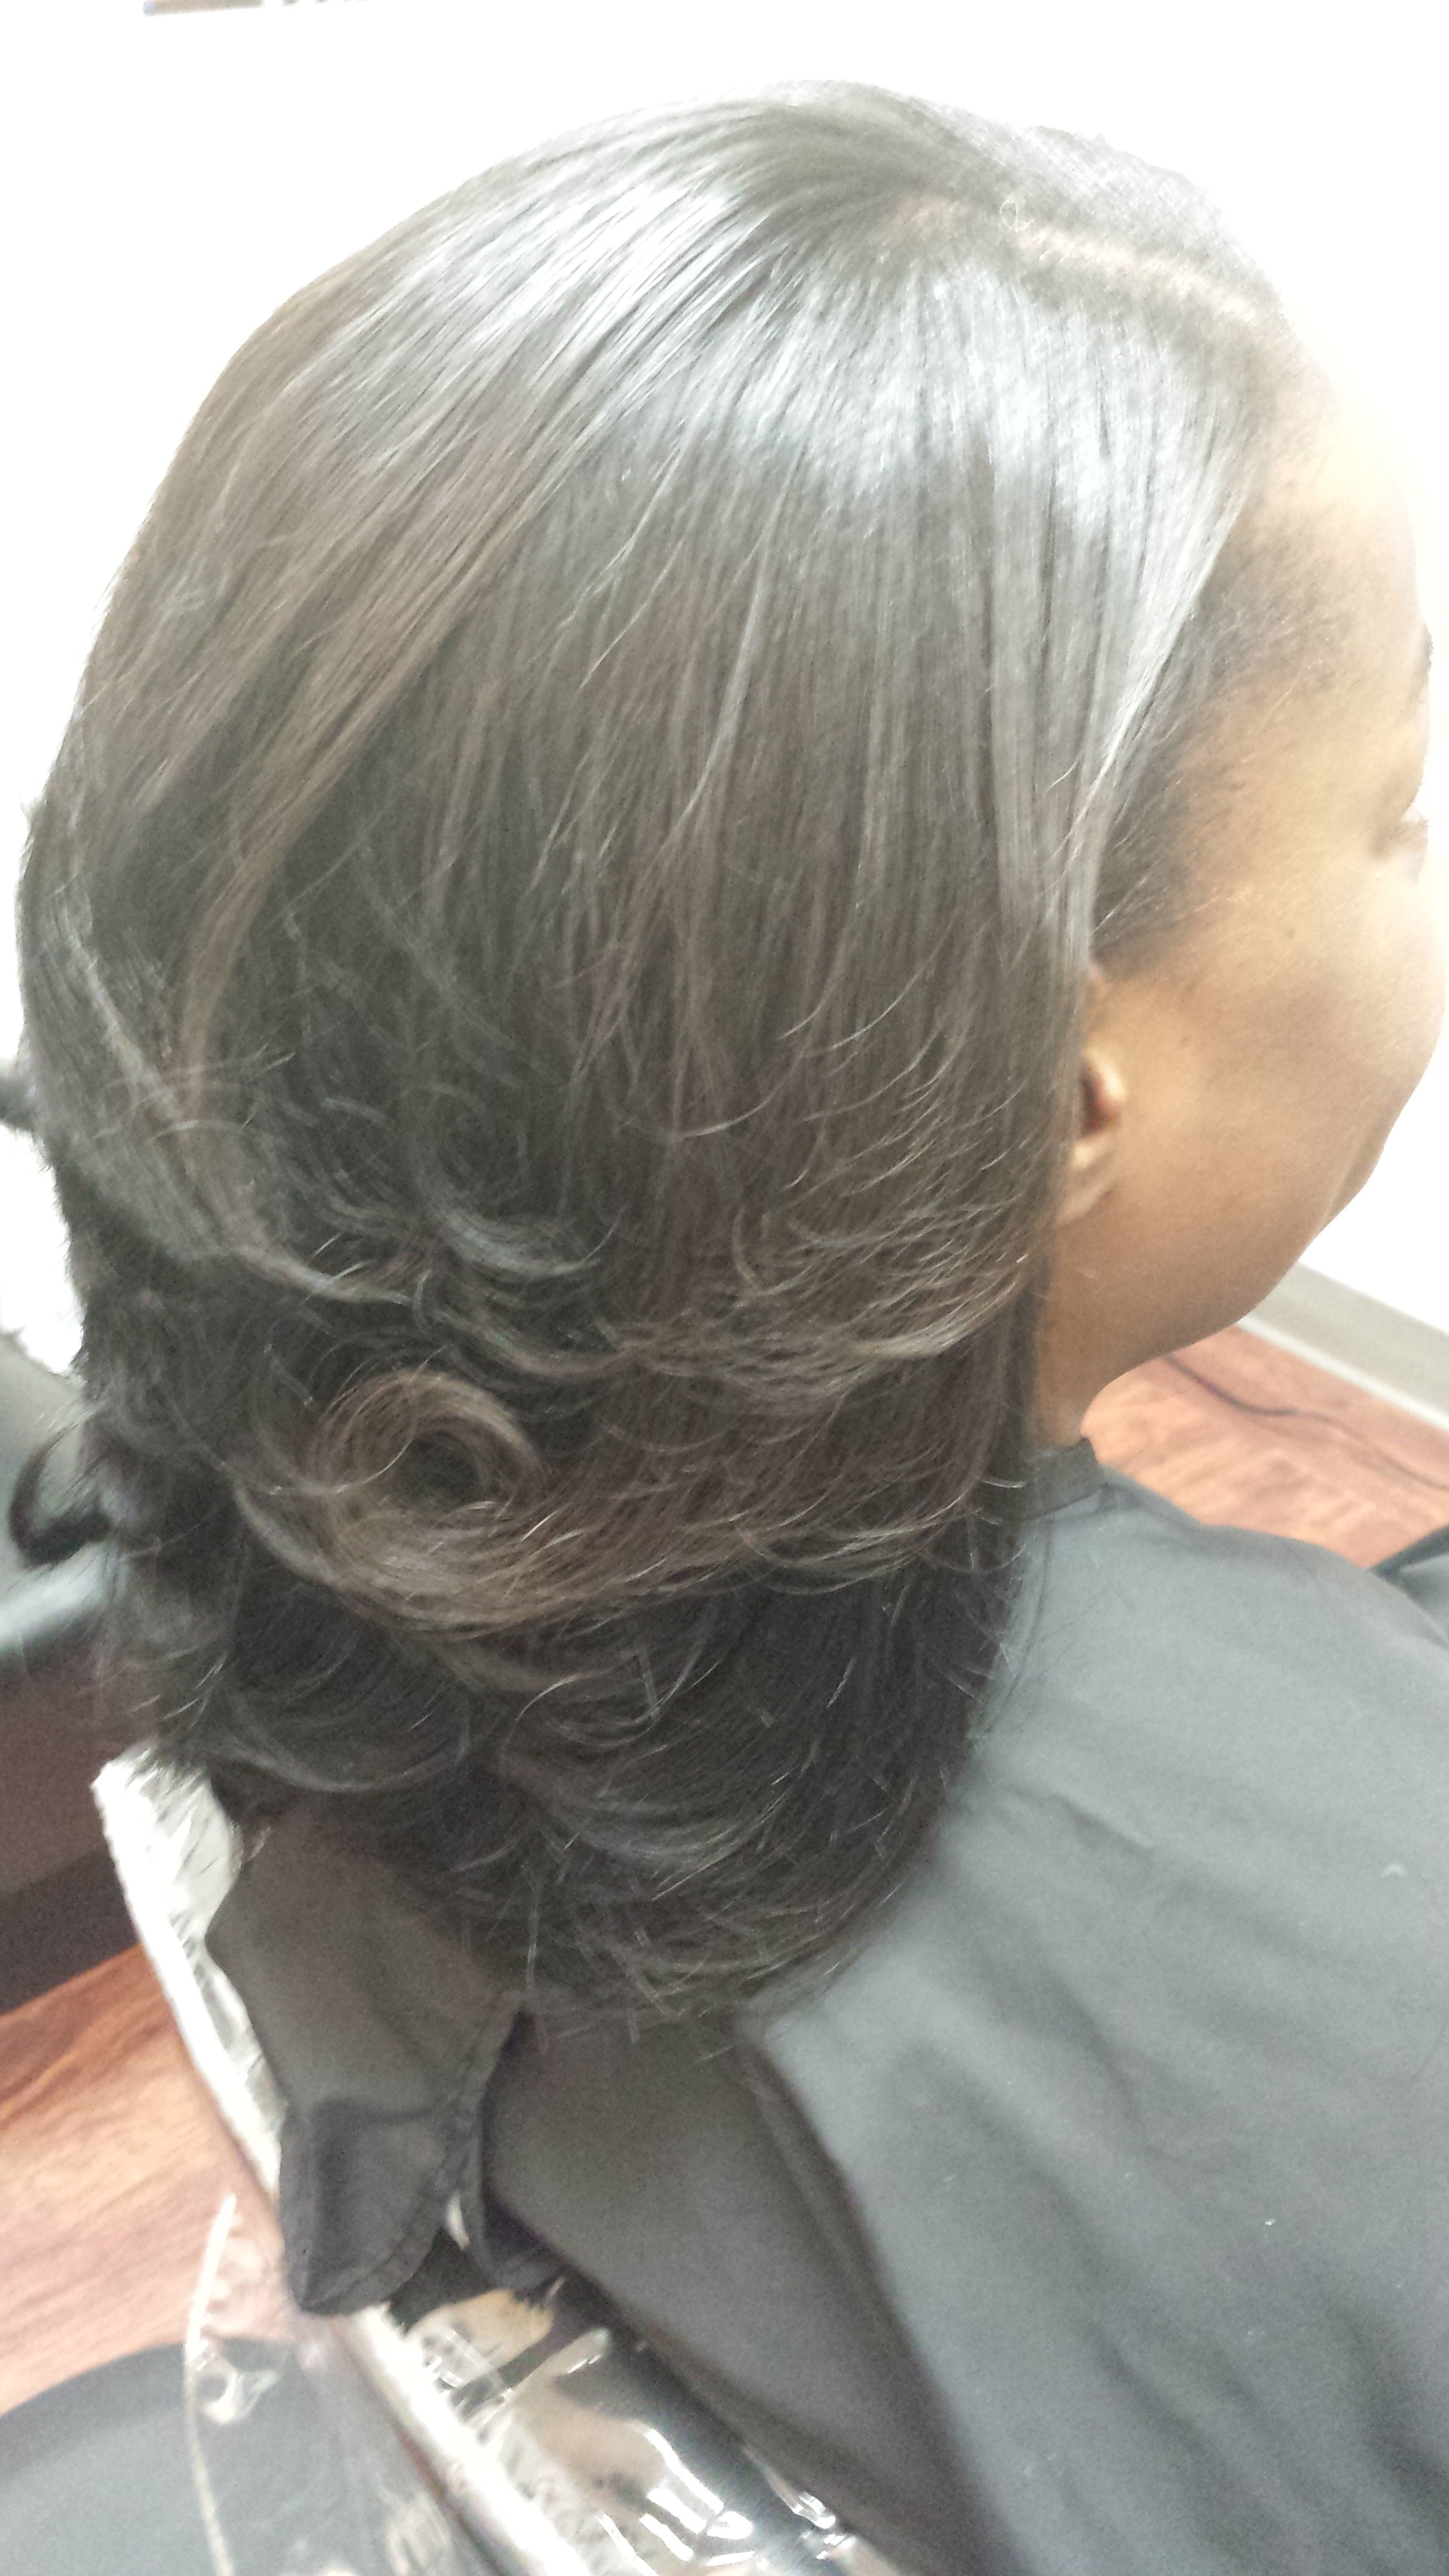 Posh Hair Designz 925 Fairlawn Ave Suite 104 Laurel MD 20707